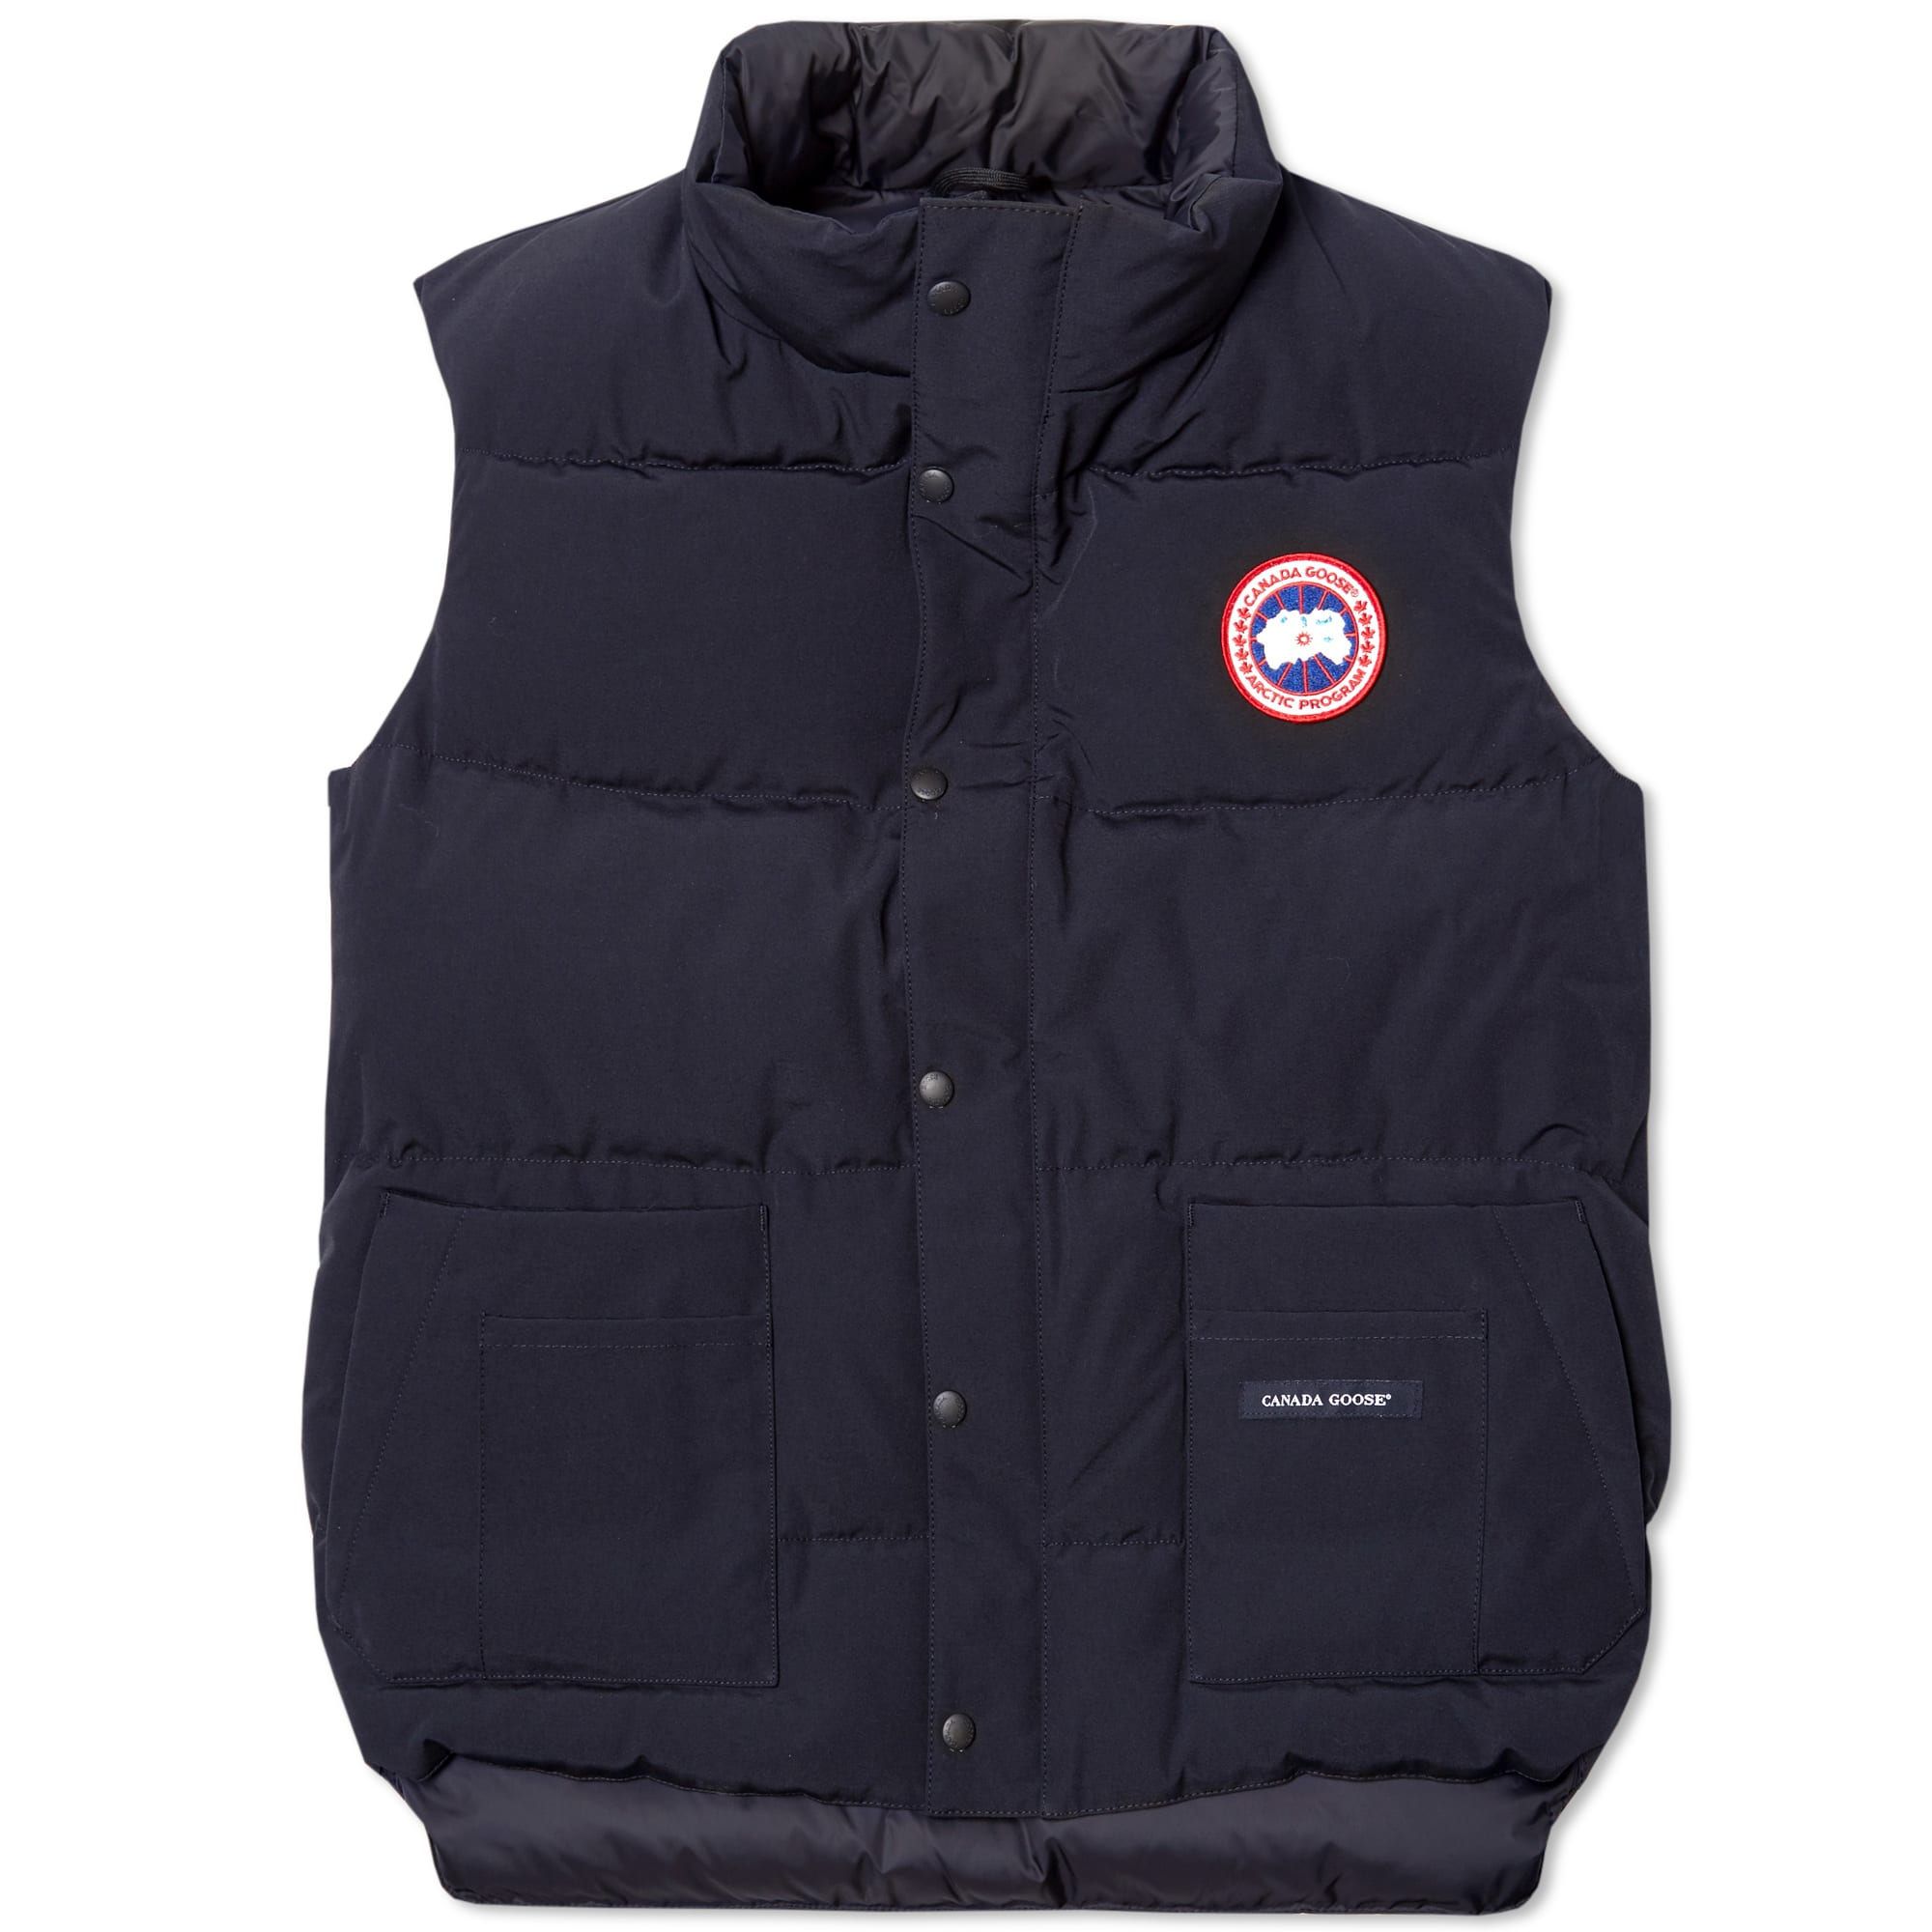 Store Locator For Canada Goose Jackets